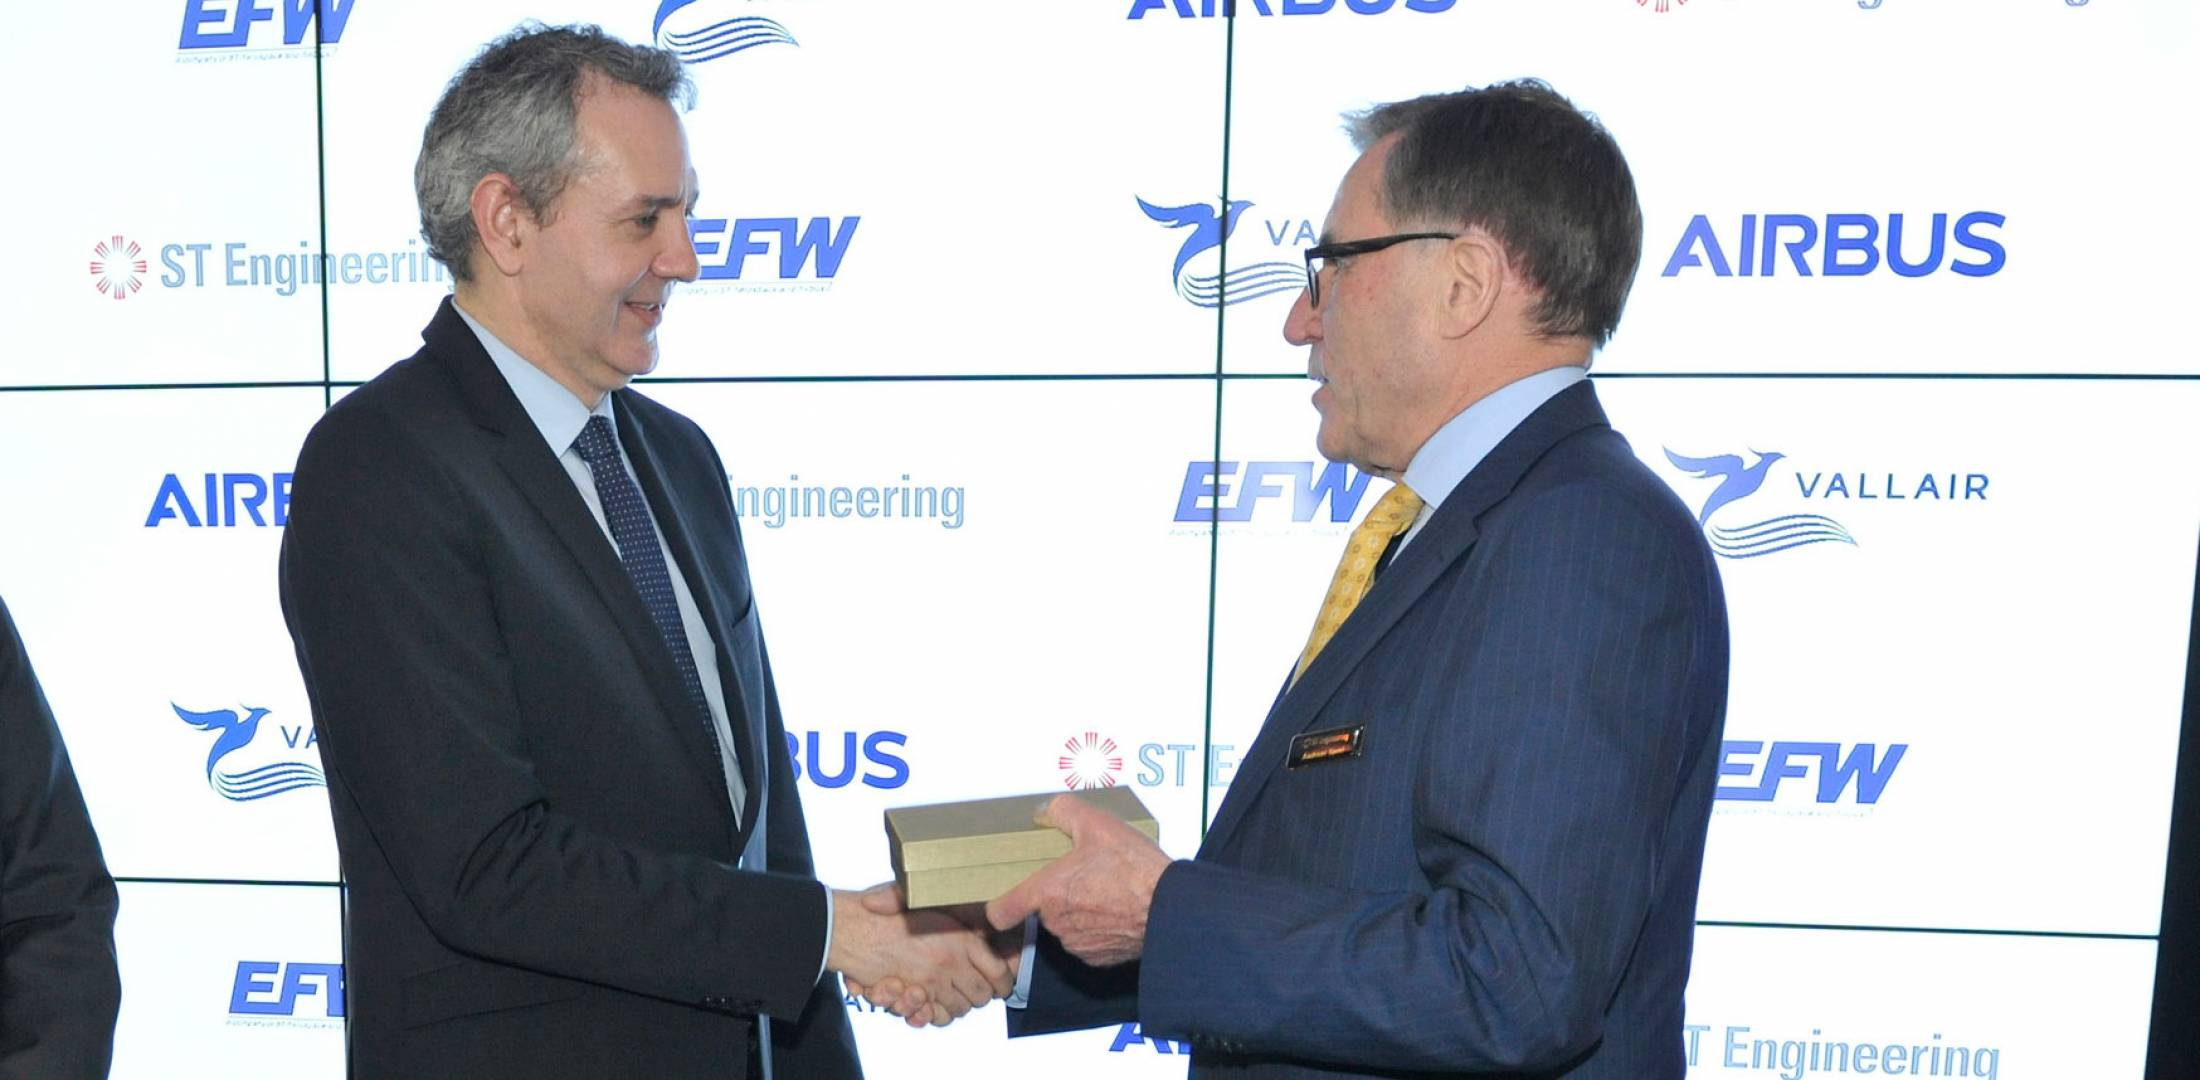 celebrate the launch of the Airbus A321 passenger-to-freighter airliner conversion program. Photo: Mark Wagner